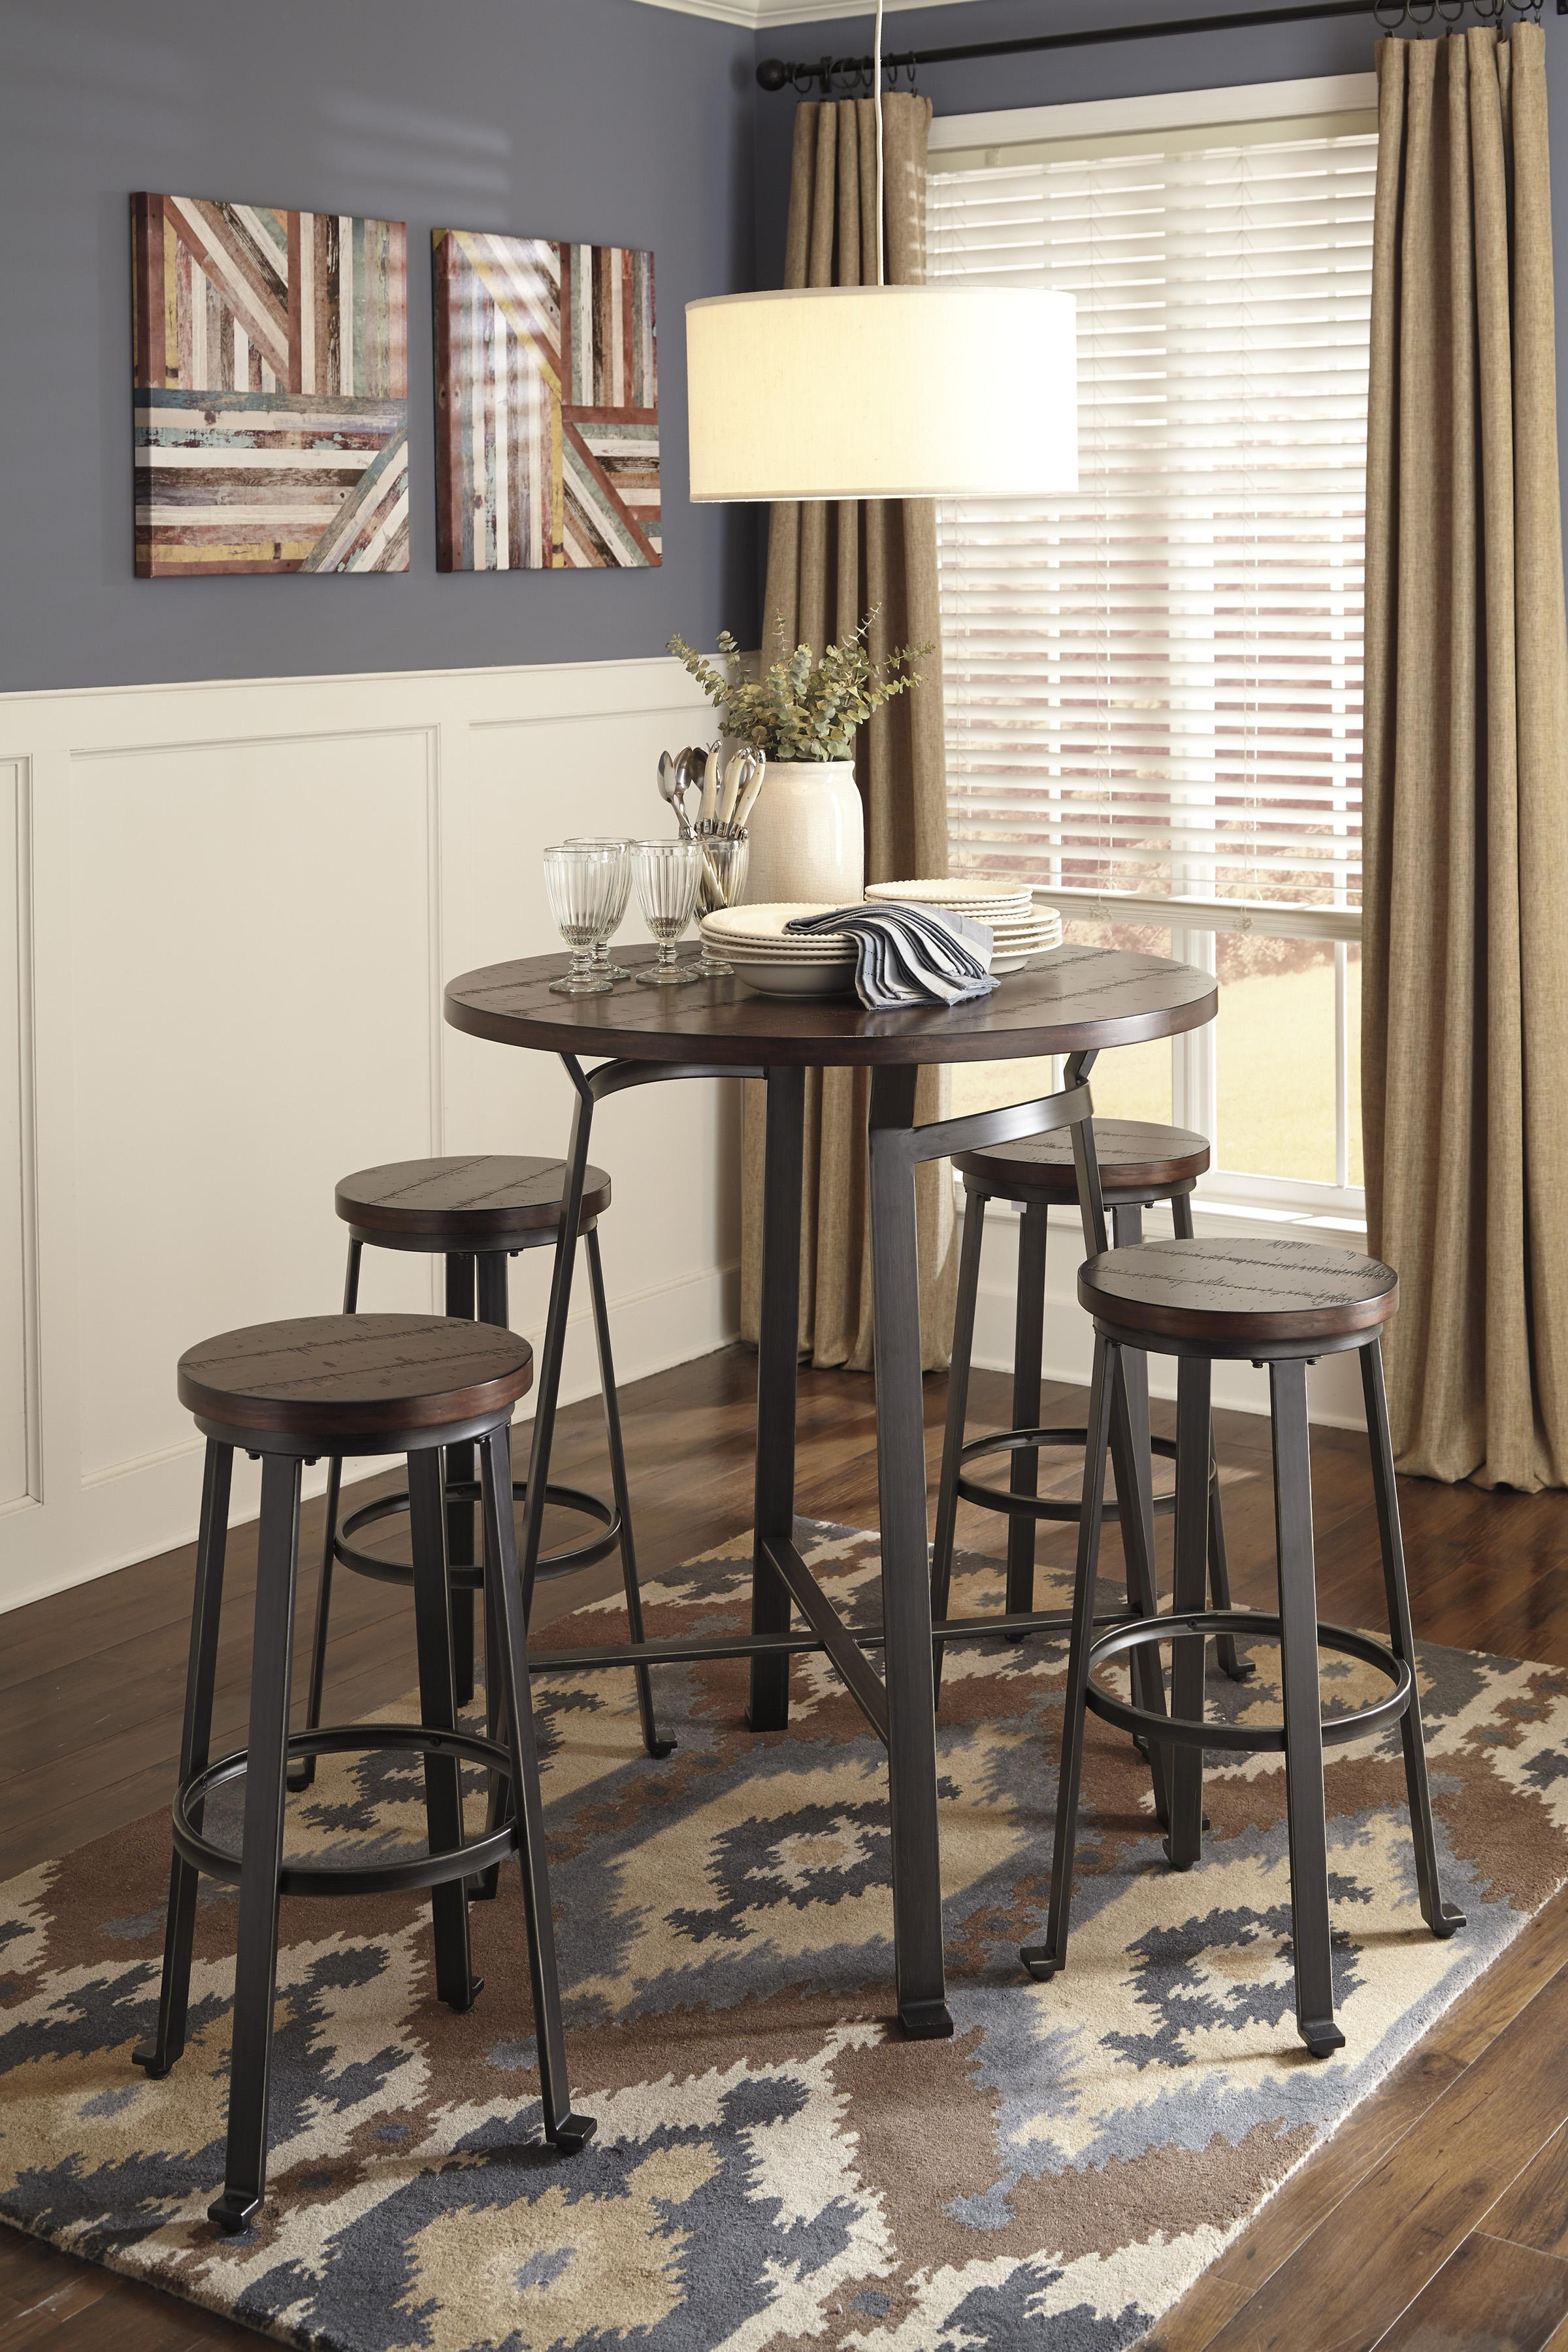 Ashley S Nest Decorating A Dining Room: Signature Design By Ashley Challiman D307-12 Industrial